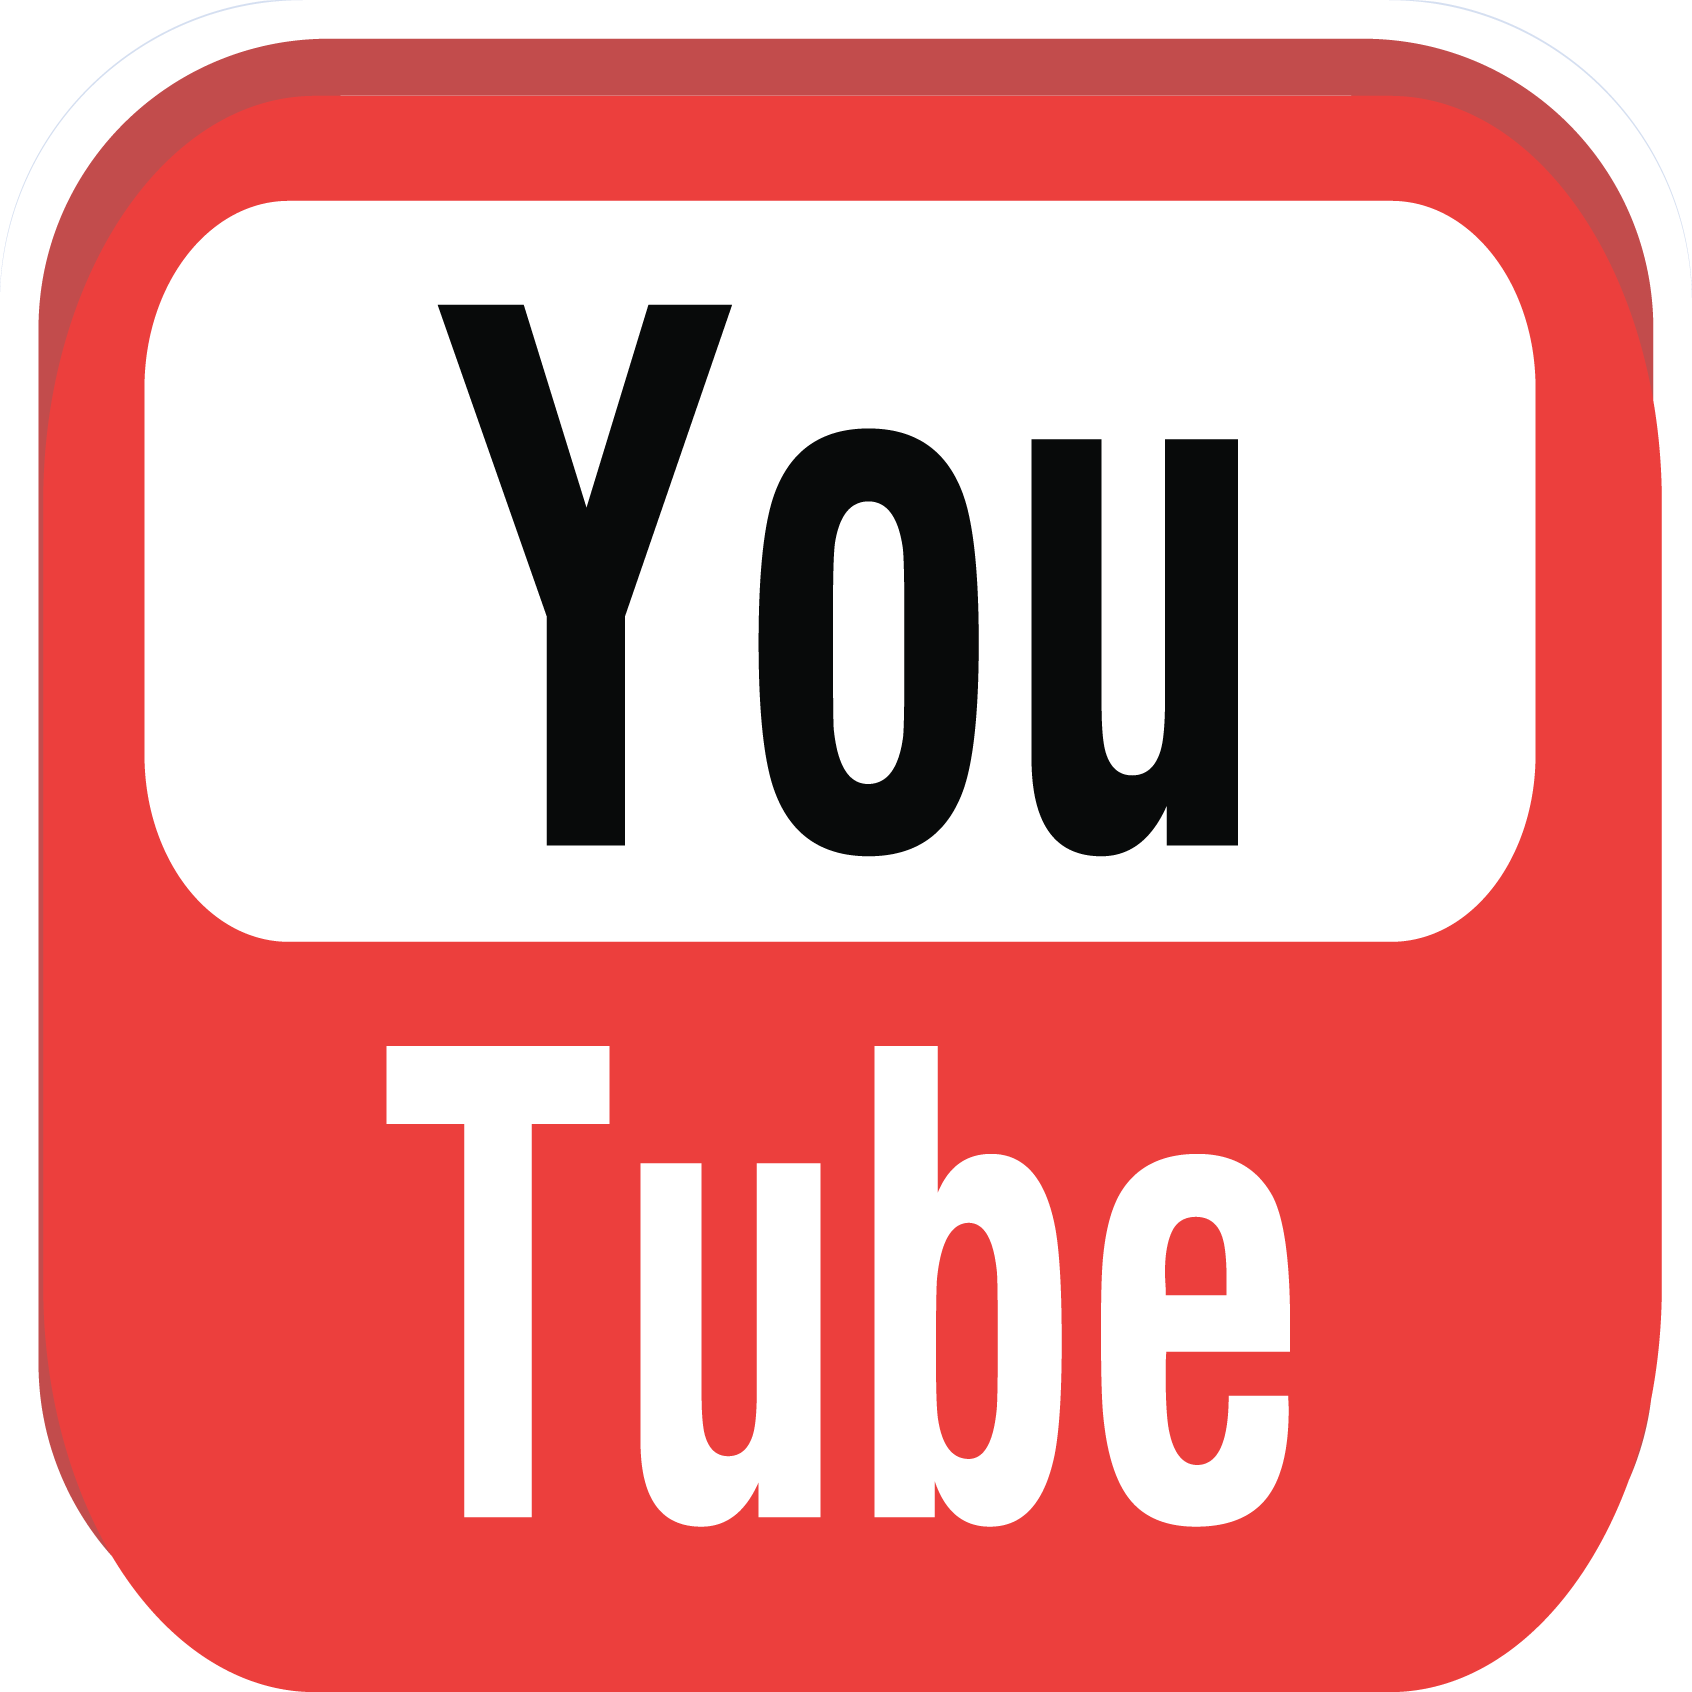 Youtube Download Png PNG Image - Youtube PNG - And You PNG